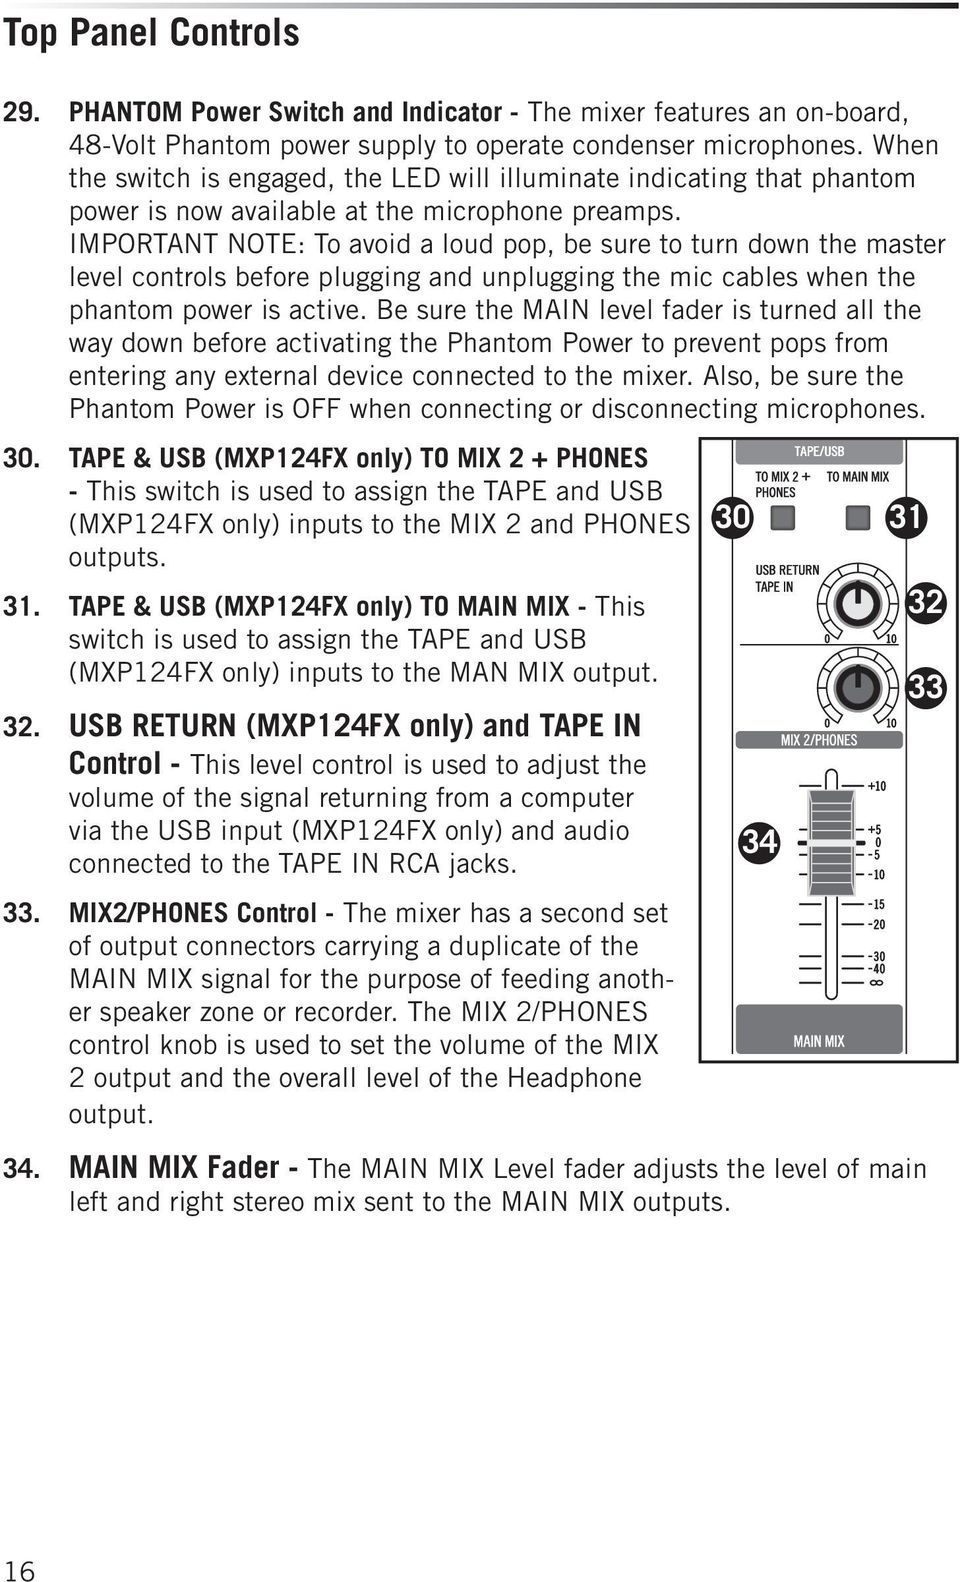 27 IMPORTANT NOTE: To avoid a loud pop, be sure to turn down the master level controls before plugging and unplugging the mic cables when the phantom power is active.